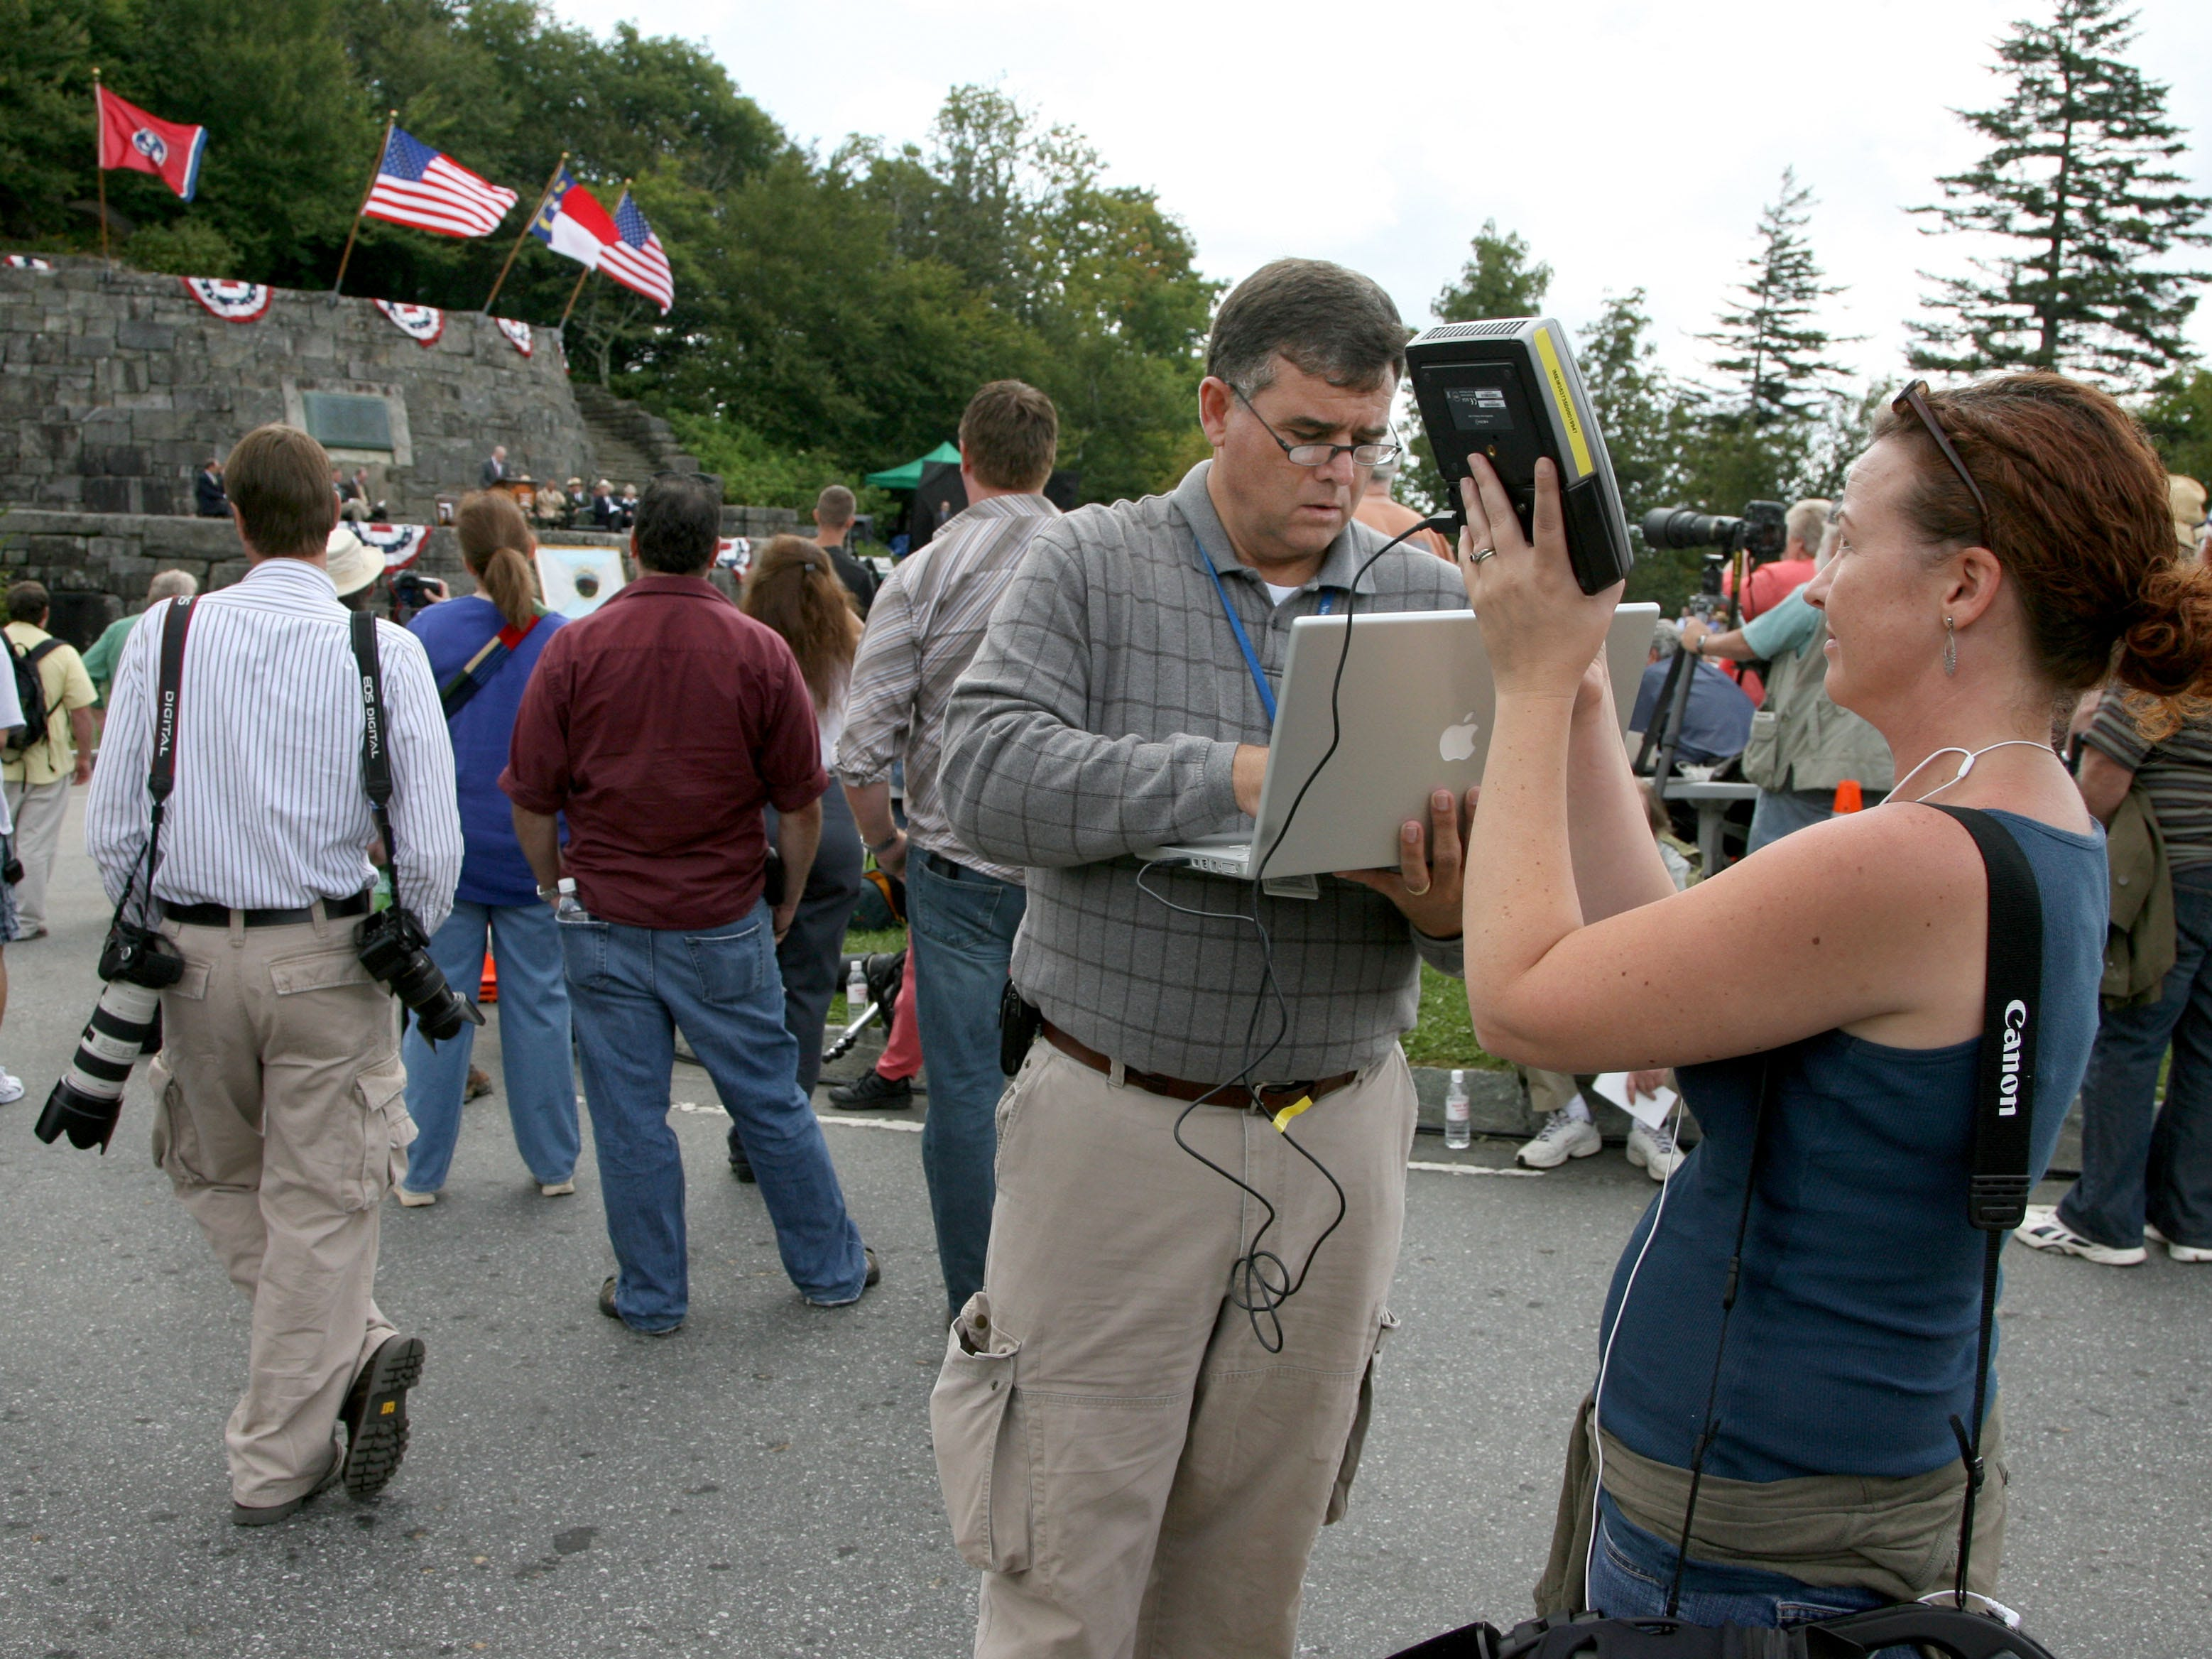 Knoxville News Sentinel staff photographer Michael Patrick, center, attempts to use a satellite phone to transmit photos as videographer Erin Chapin, right, helps during the 75th anniversary re-dedication of the Great Smoky Mountains National Park on Wednesday, September 2, 2009 at Newfound Gap.